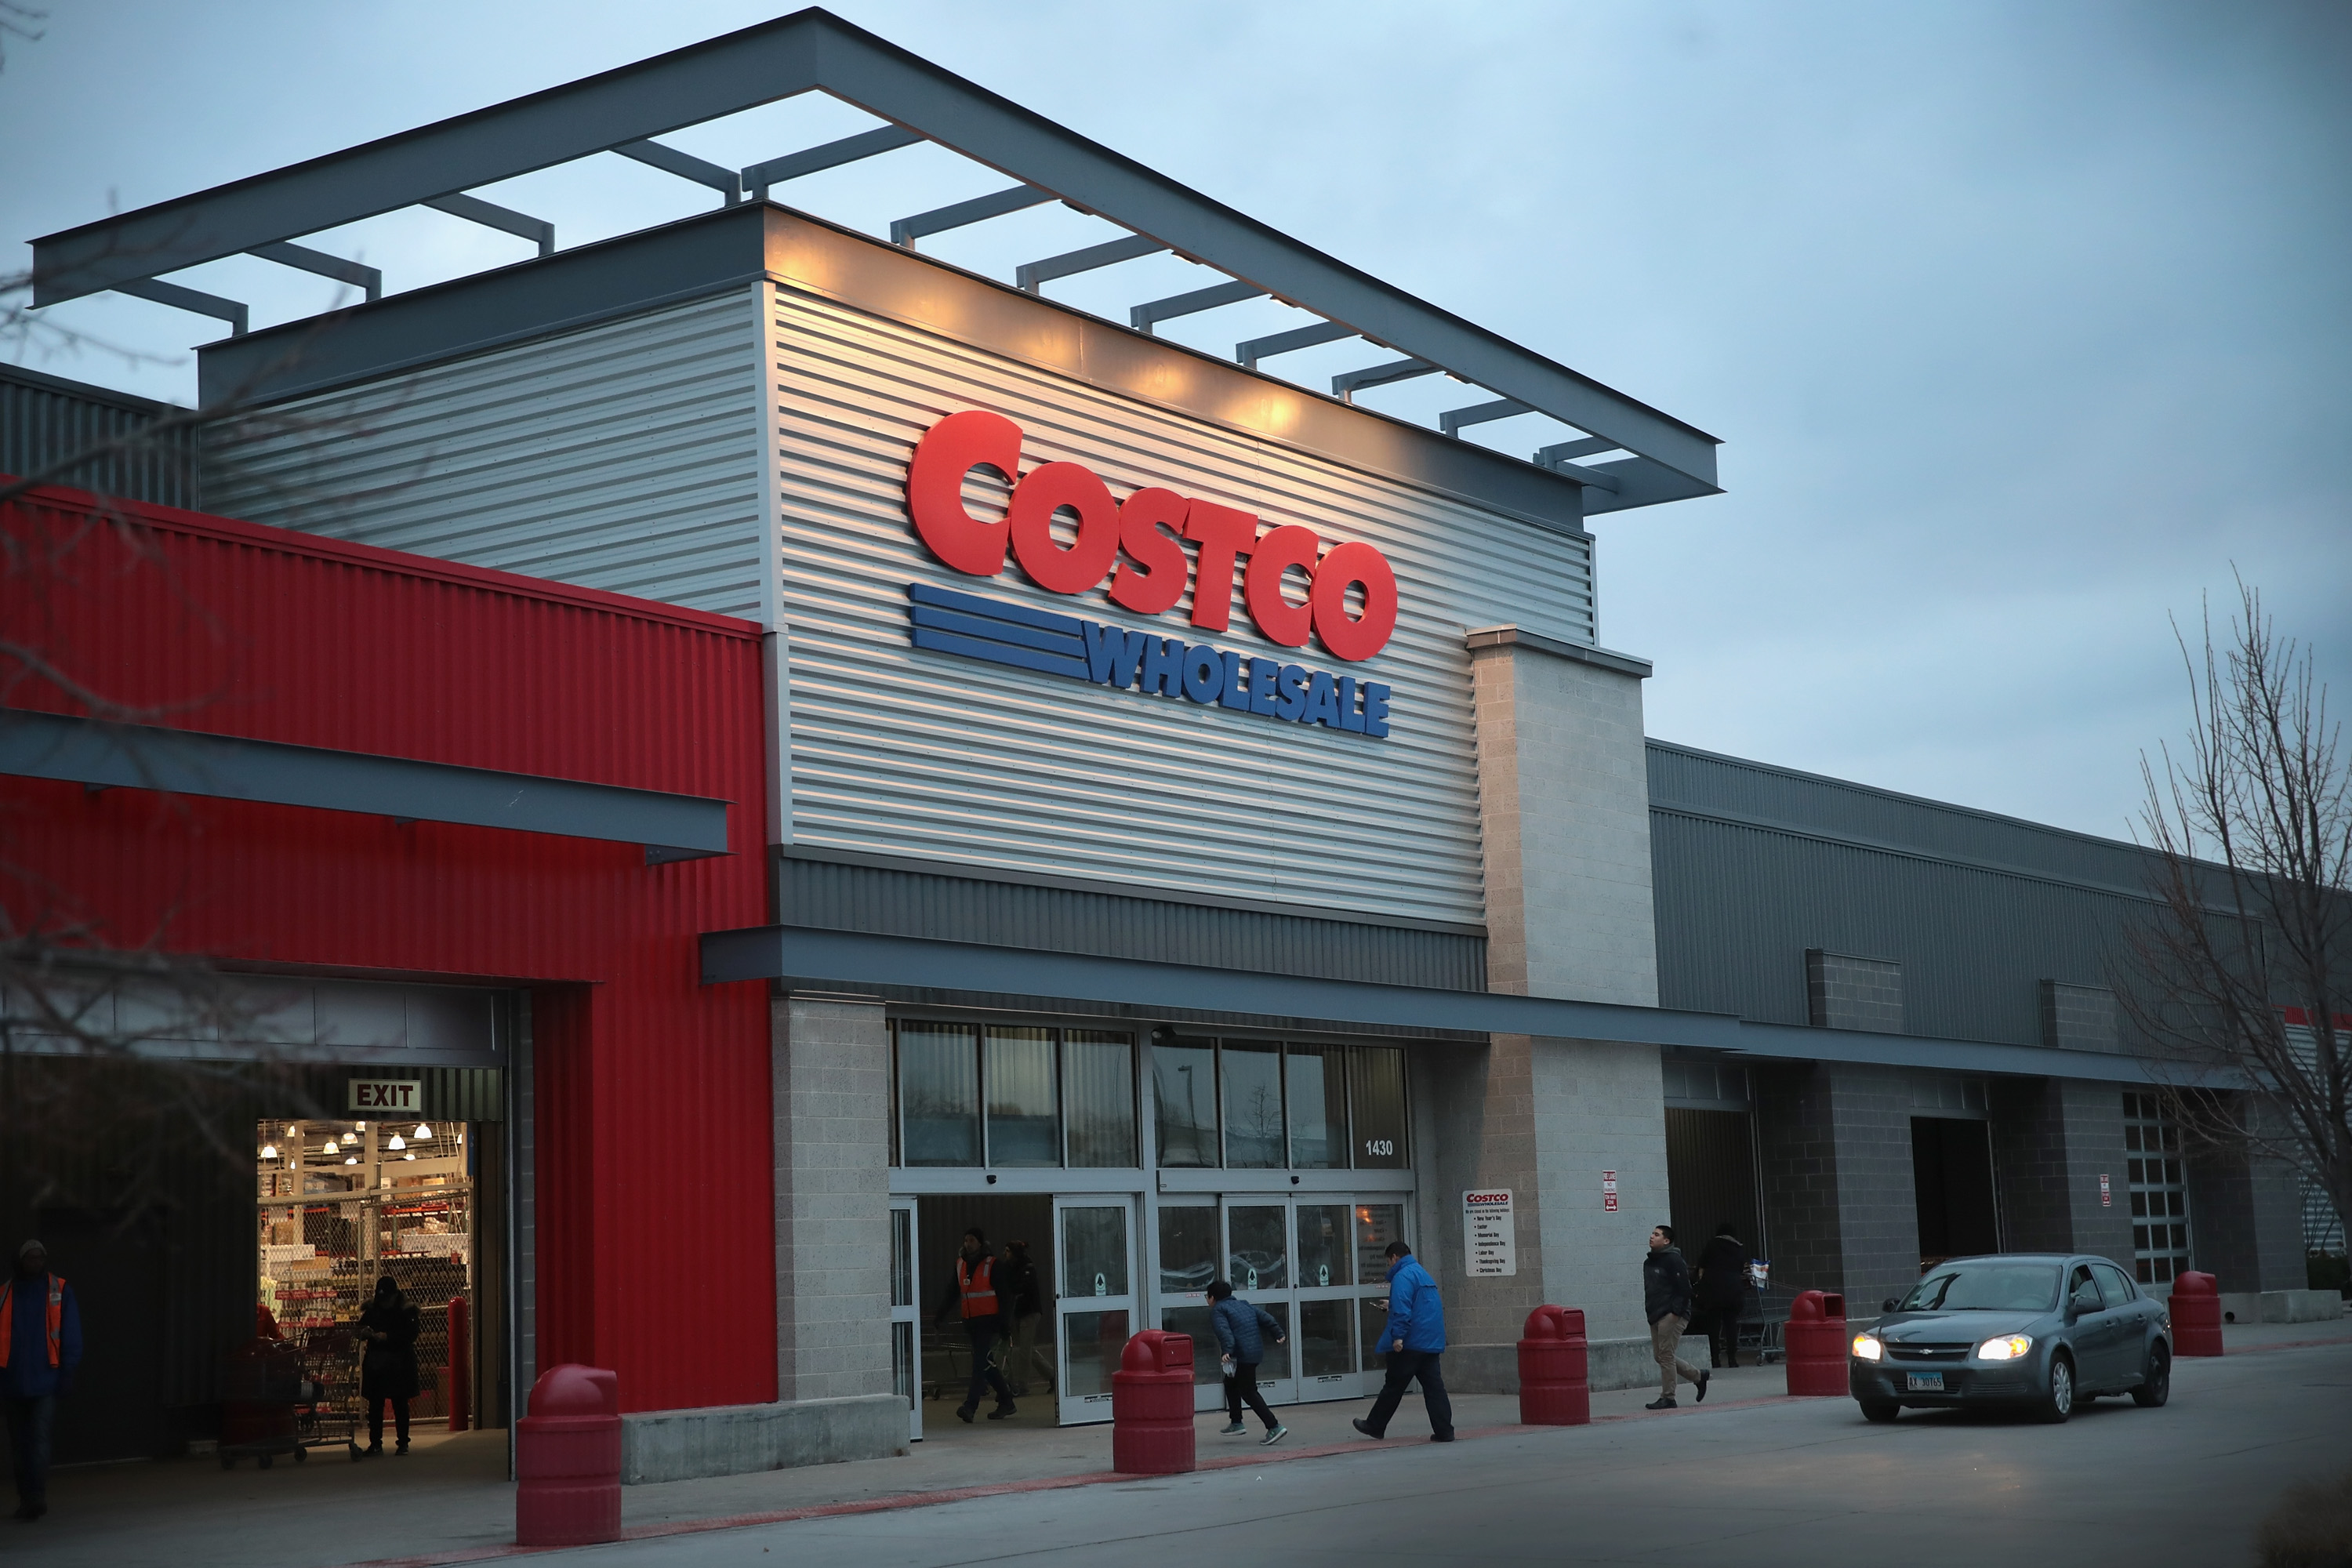 Customers shop at a Costco store on December 12, 2018 in Chicago, Illinois. Costco is expected to report its fiscal 1Q19 on December 13.